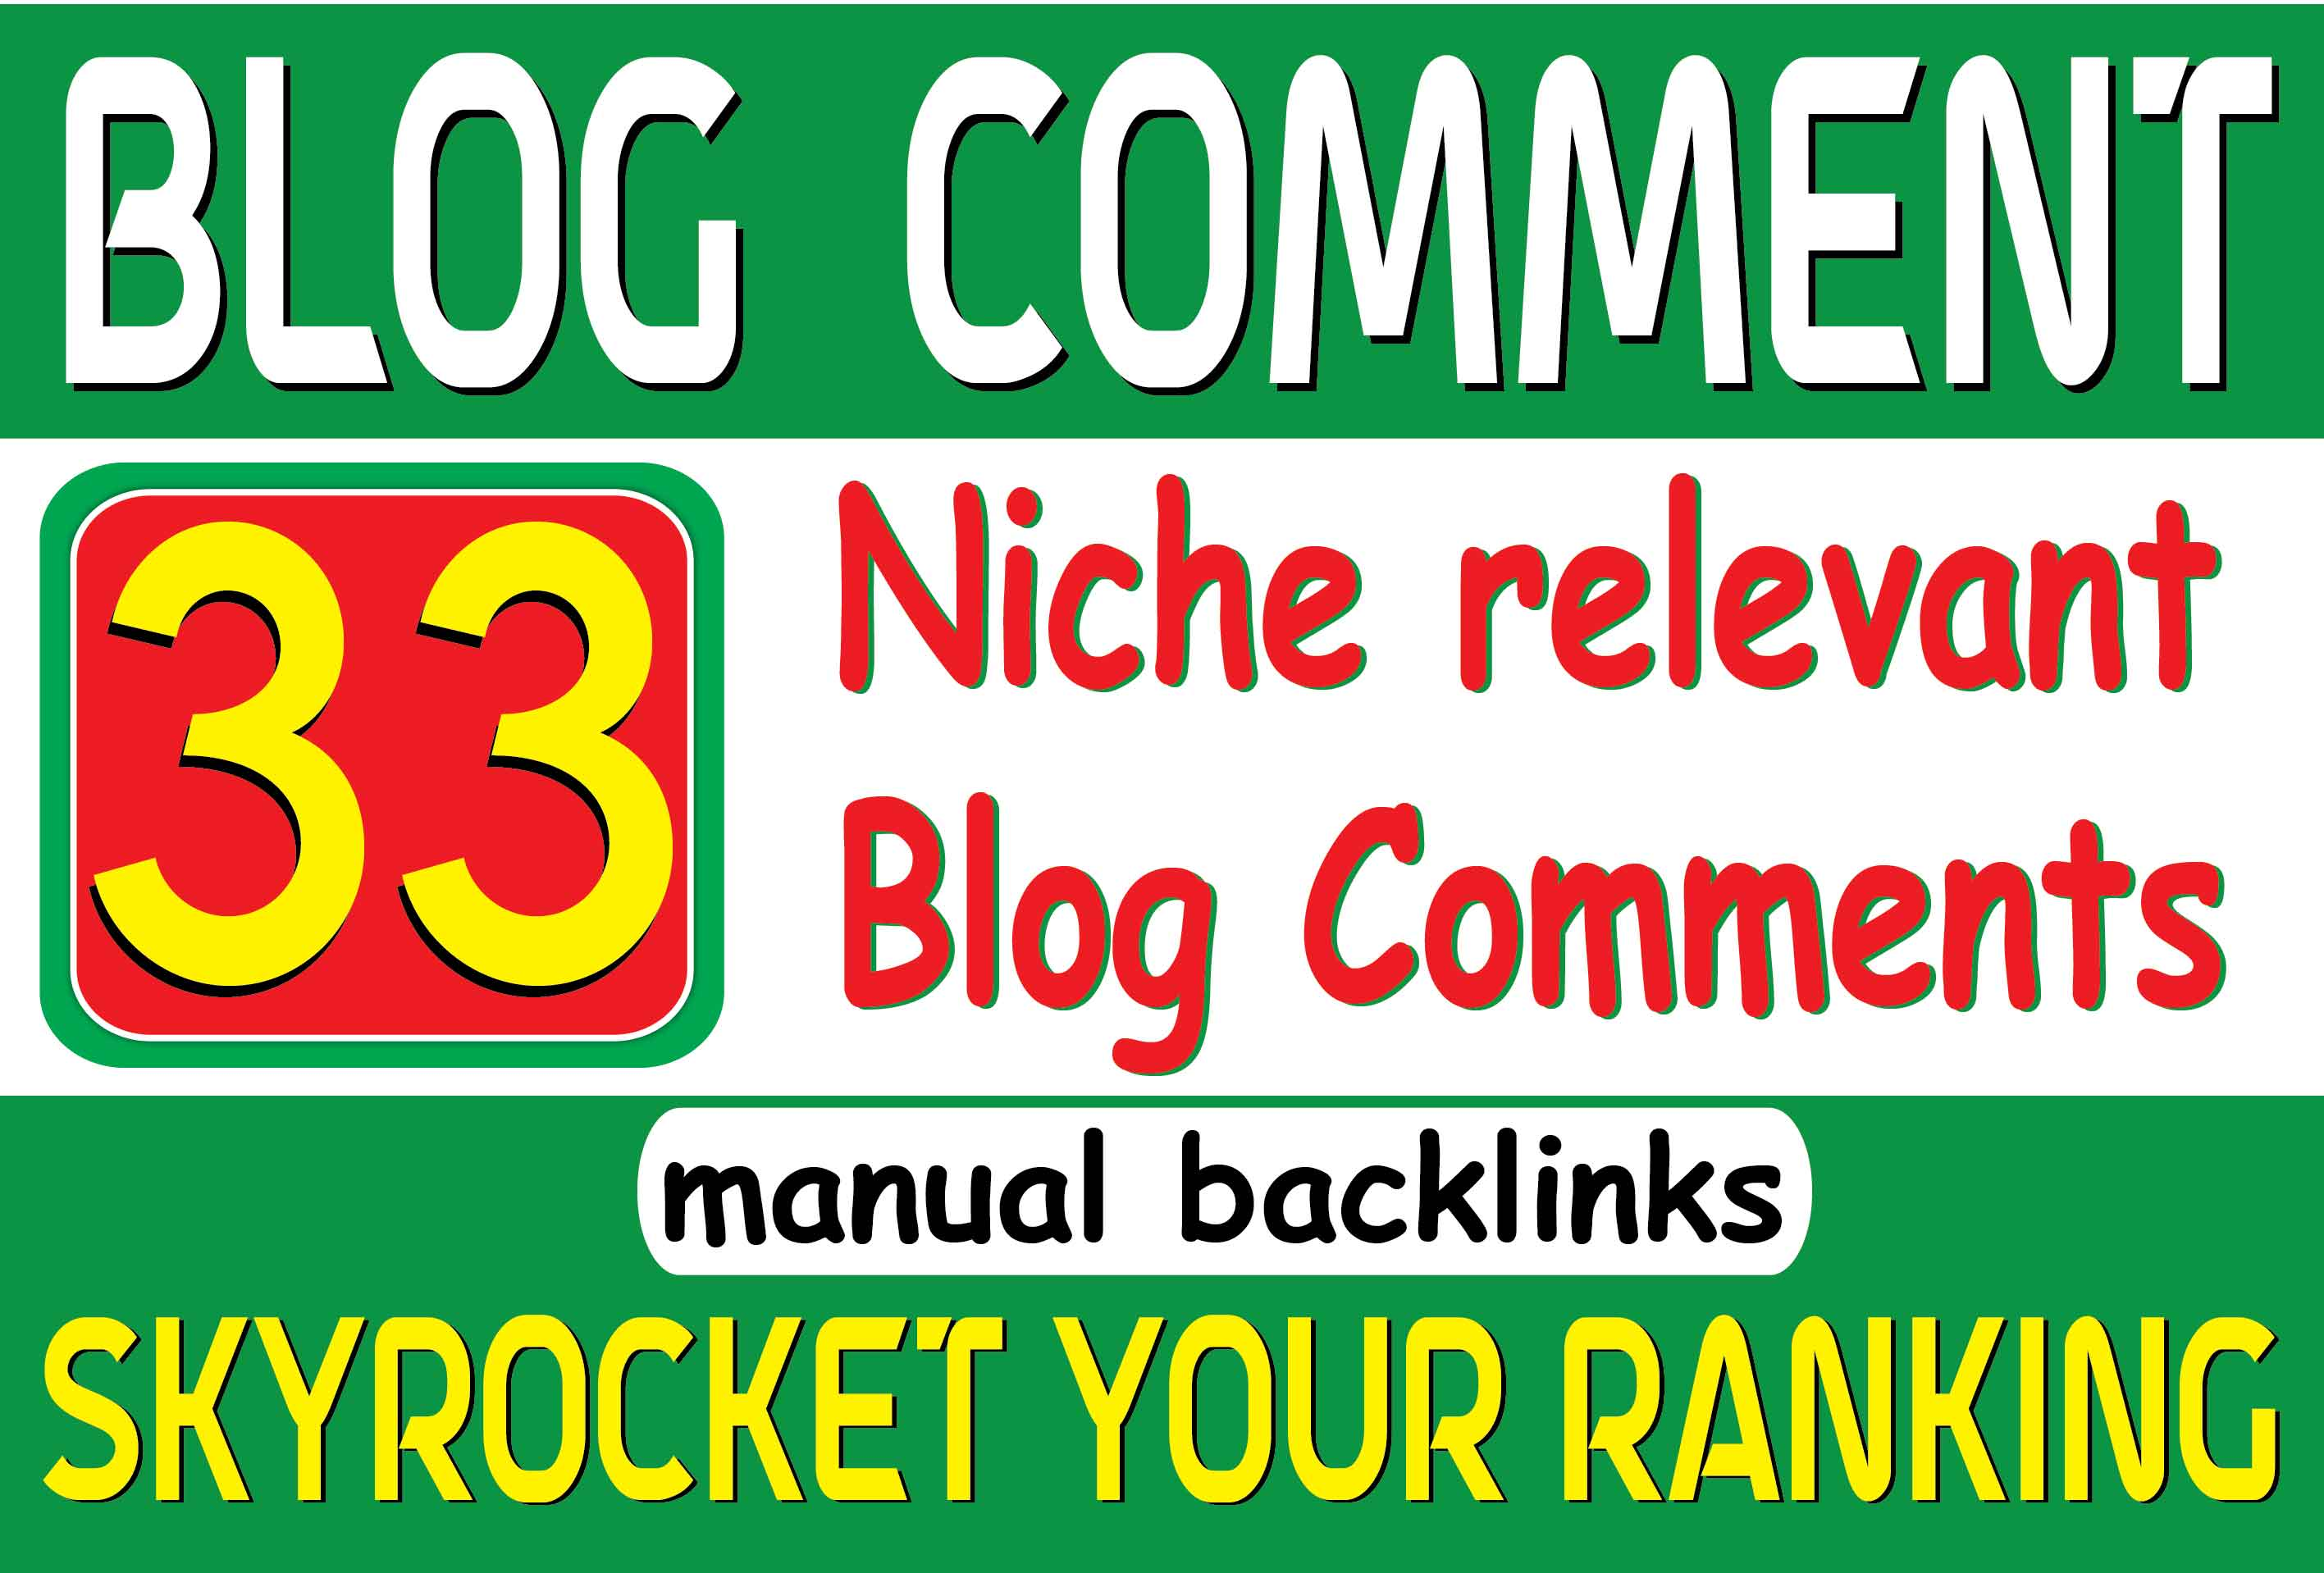 Niche Relevant 33 Blog Comment and Backlinks Manually for your Website's Natural Ranking